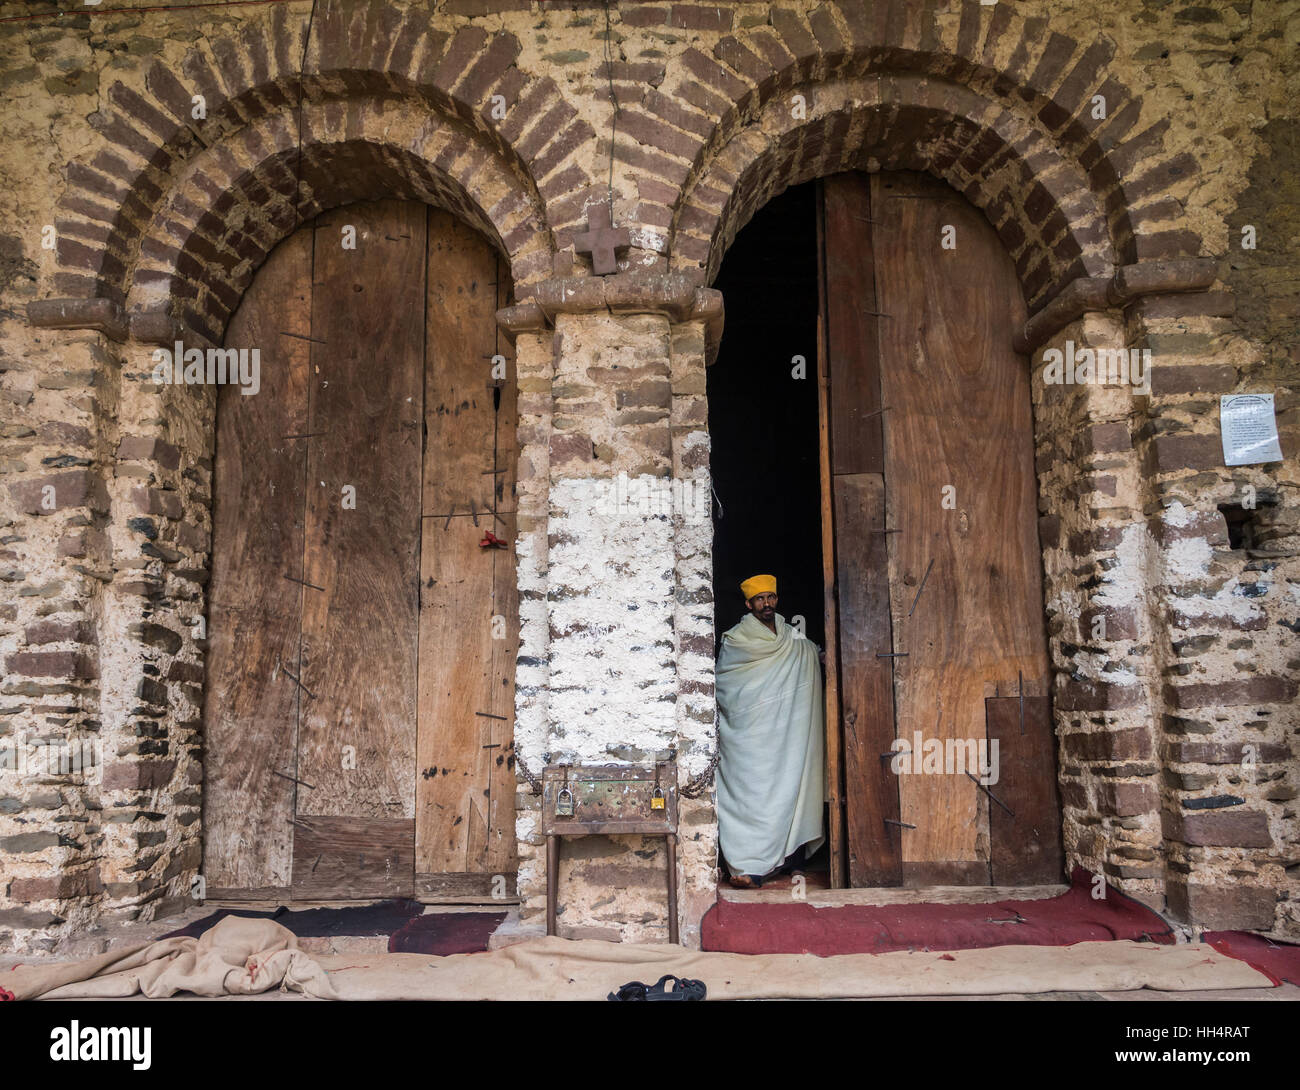 Ethiopian priest coming out of Yohannis Debre Birhan Selassie (Trinity and Mountain of Light) Church in Gondar - Stock Image